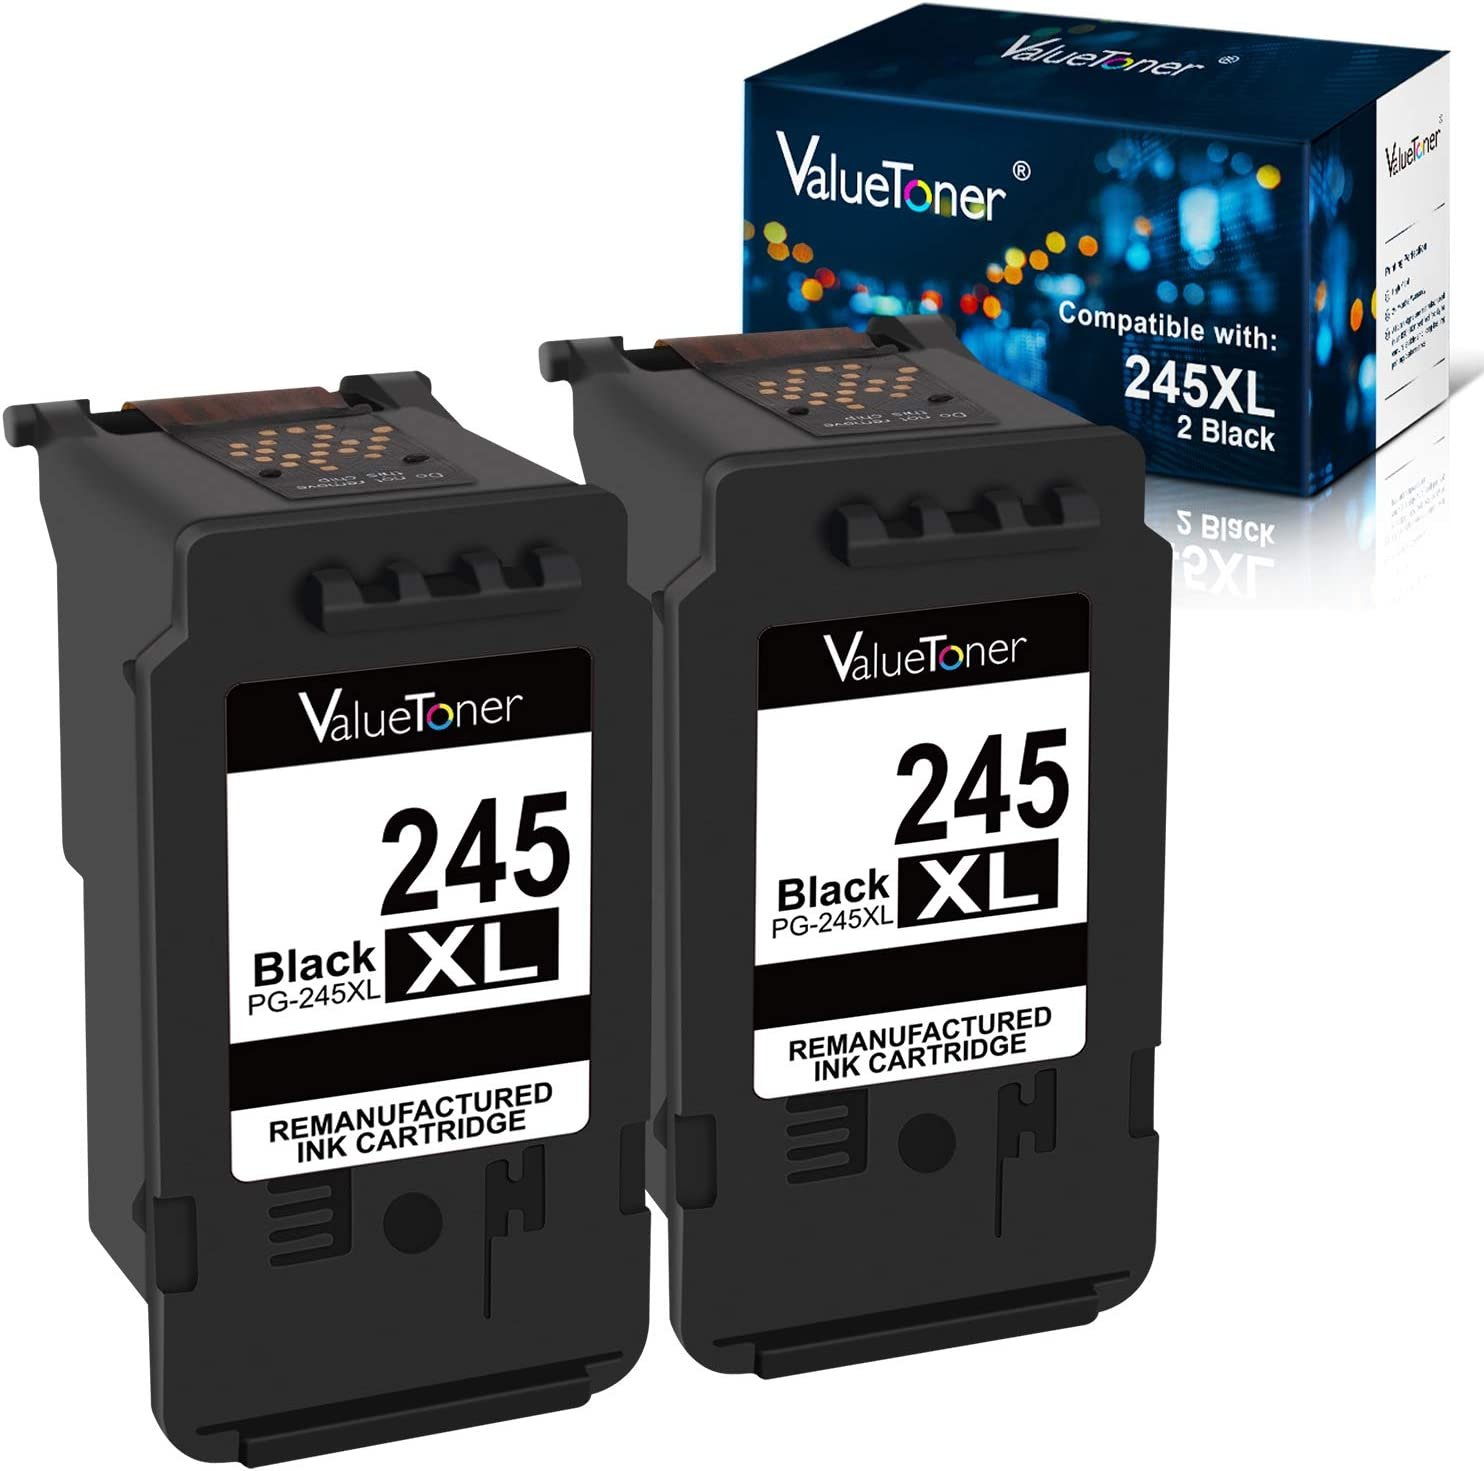 Valuetoner Remanufactured Ink Cartridge Replacement for Canon 245XL PG-245XL PG245XL PG-243 for PIXMA MX492 TR4520 MX490 MG3022 MG2522 MG2920 MG2420 MG2520 MG2922 MG2924 MG3029 iP2820 (Black, 2 Pack)